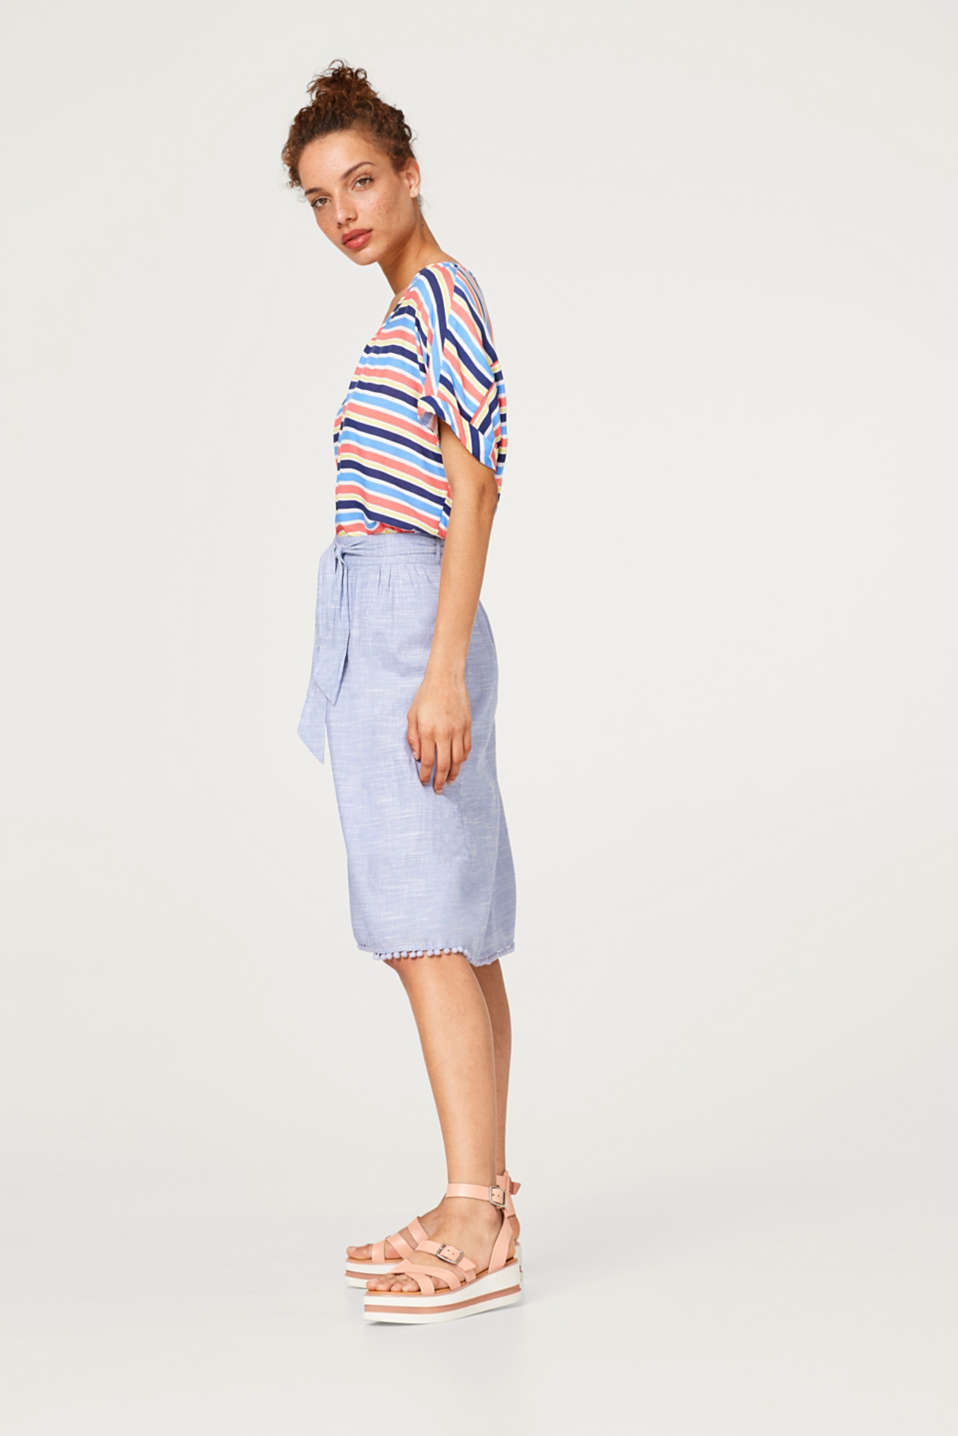 Esprit - Chambray skirt with a pompom hem, 100% cotton